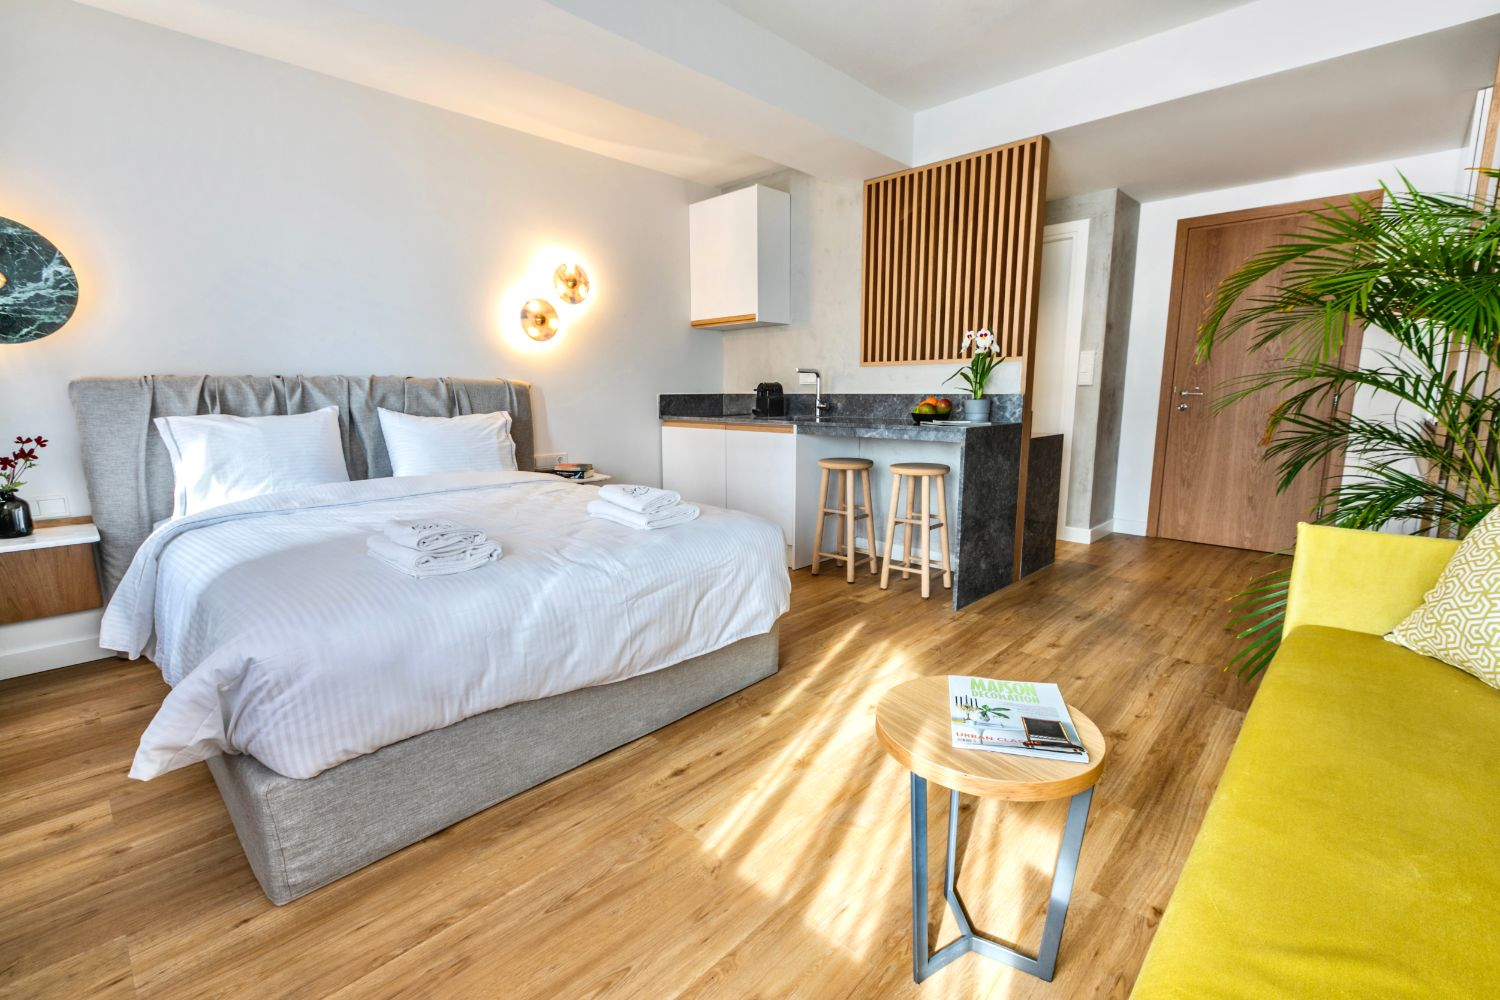 #705 Double Bed and Sitting Area